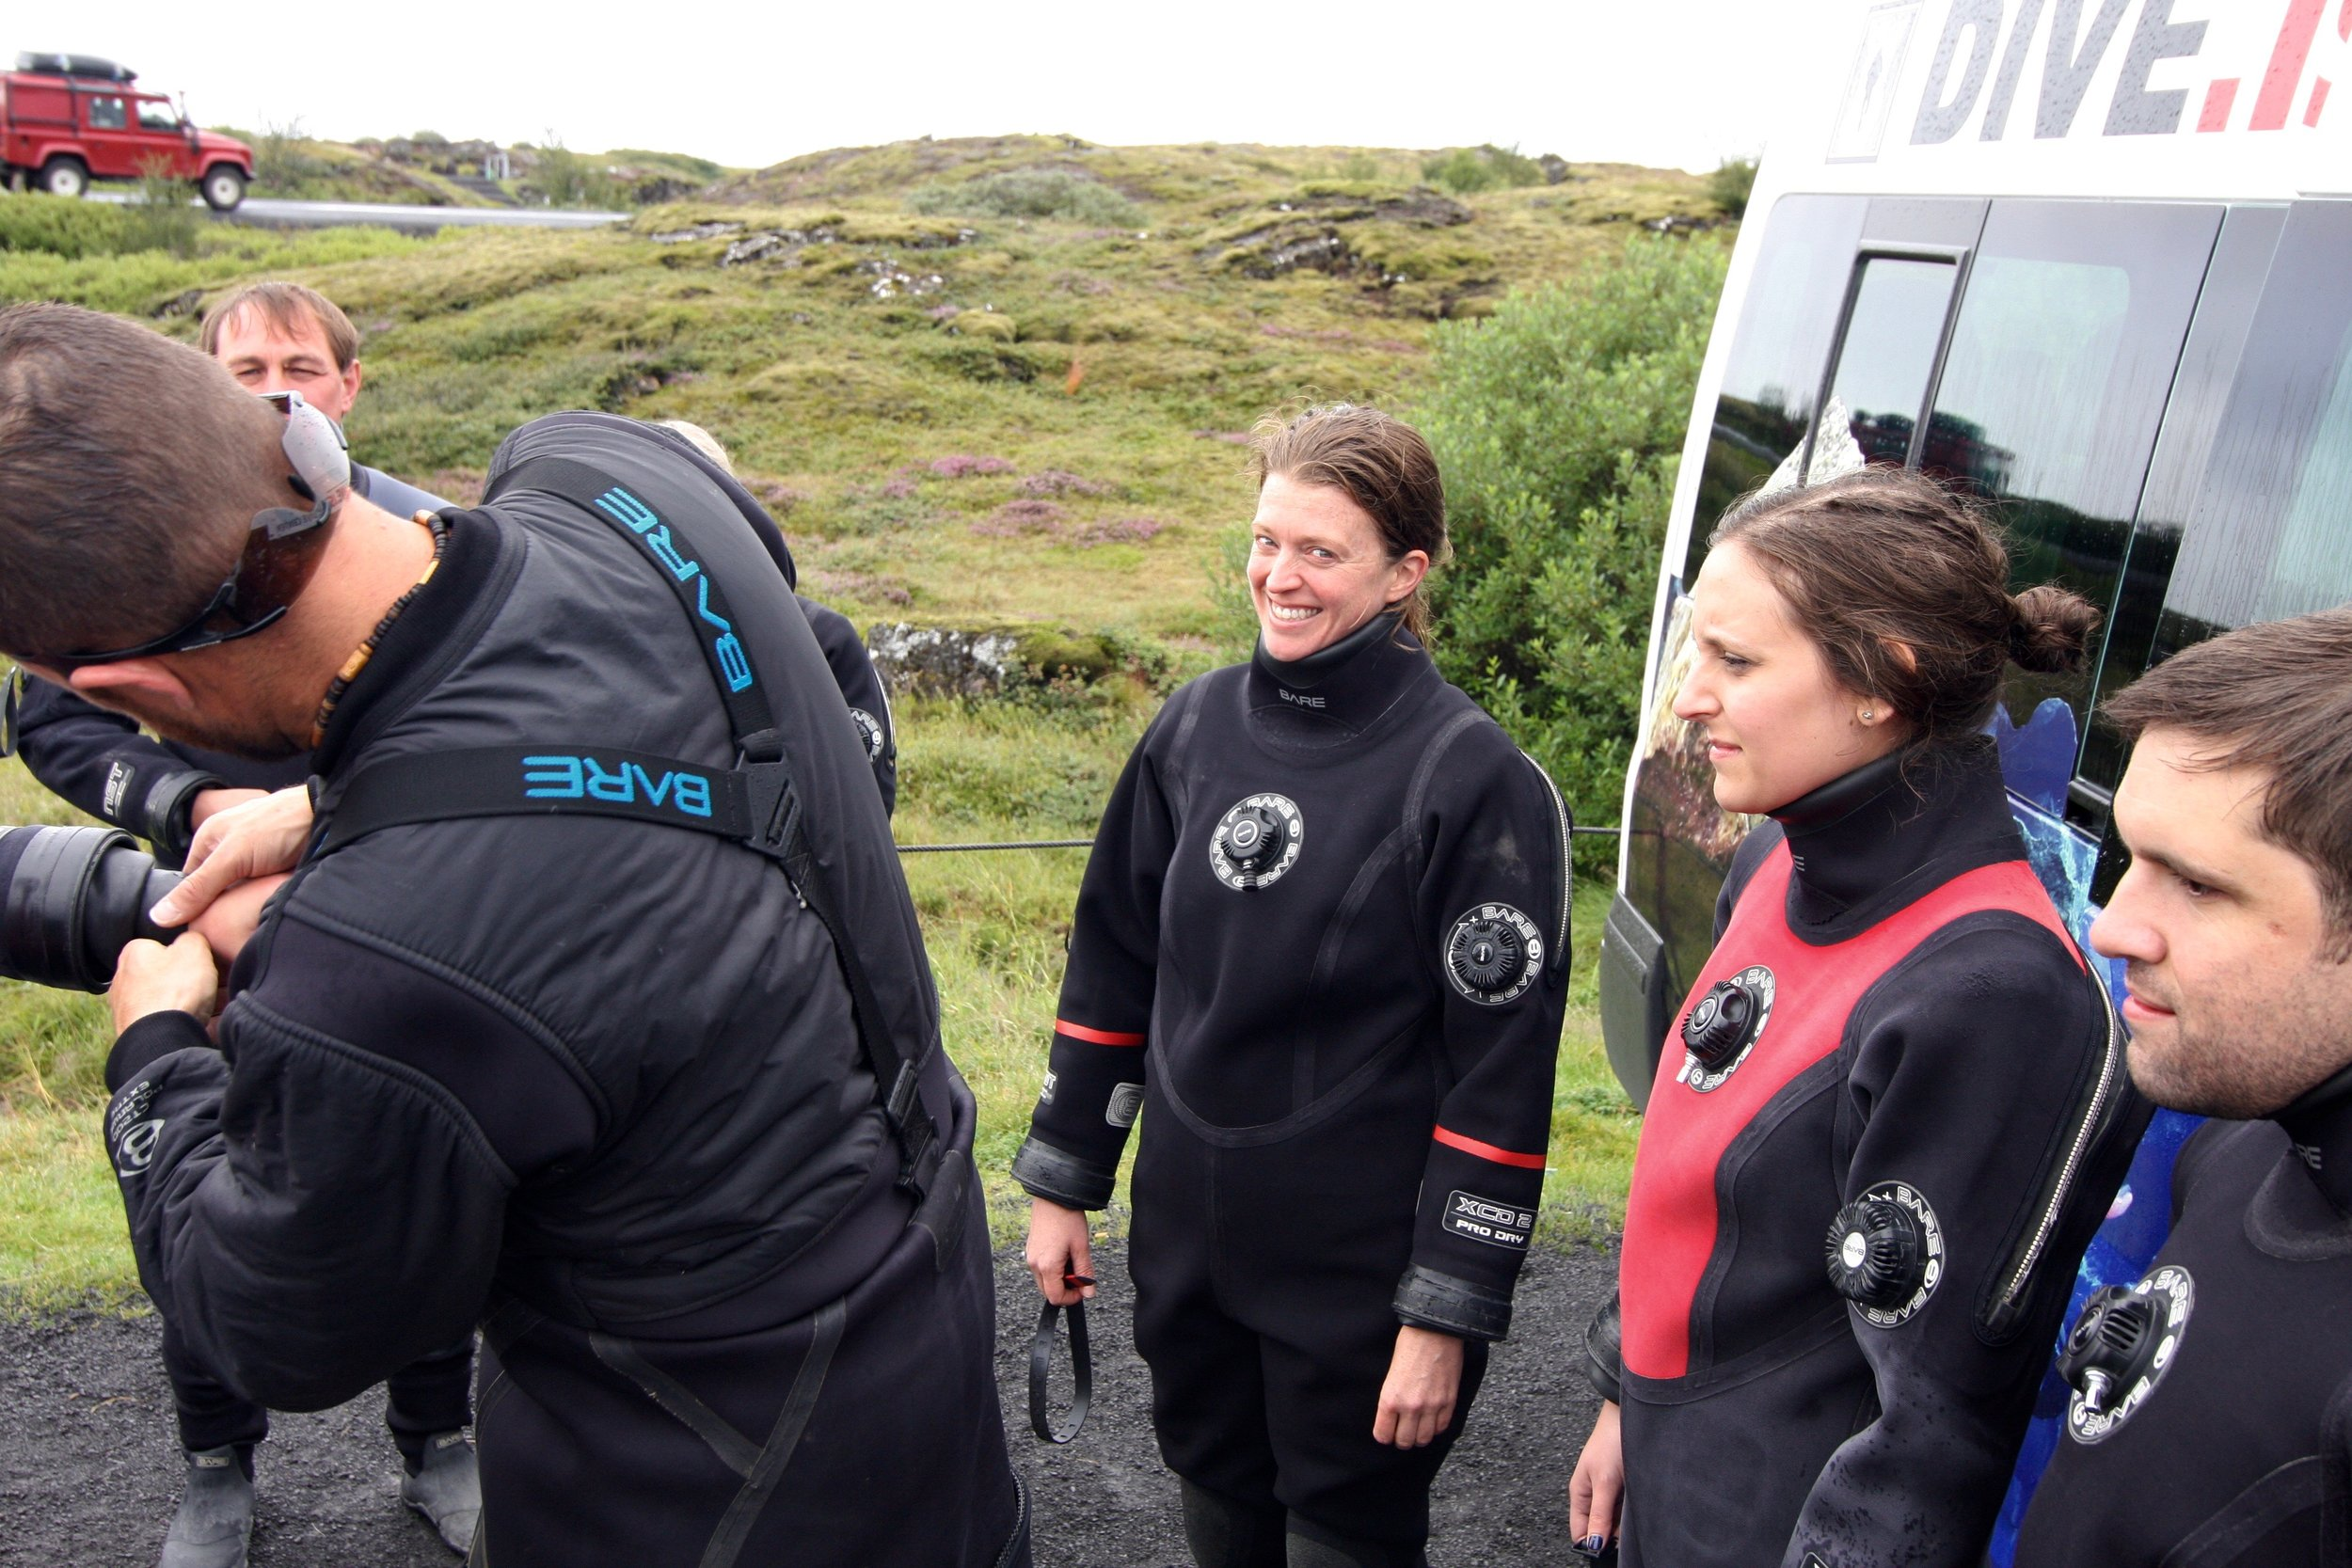 Getting suited up for the Silfra Fissure, one of the most peaceful and beautiful things I have floated through